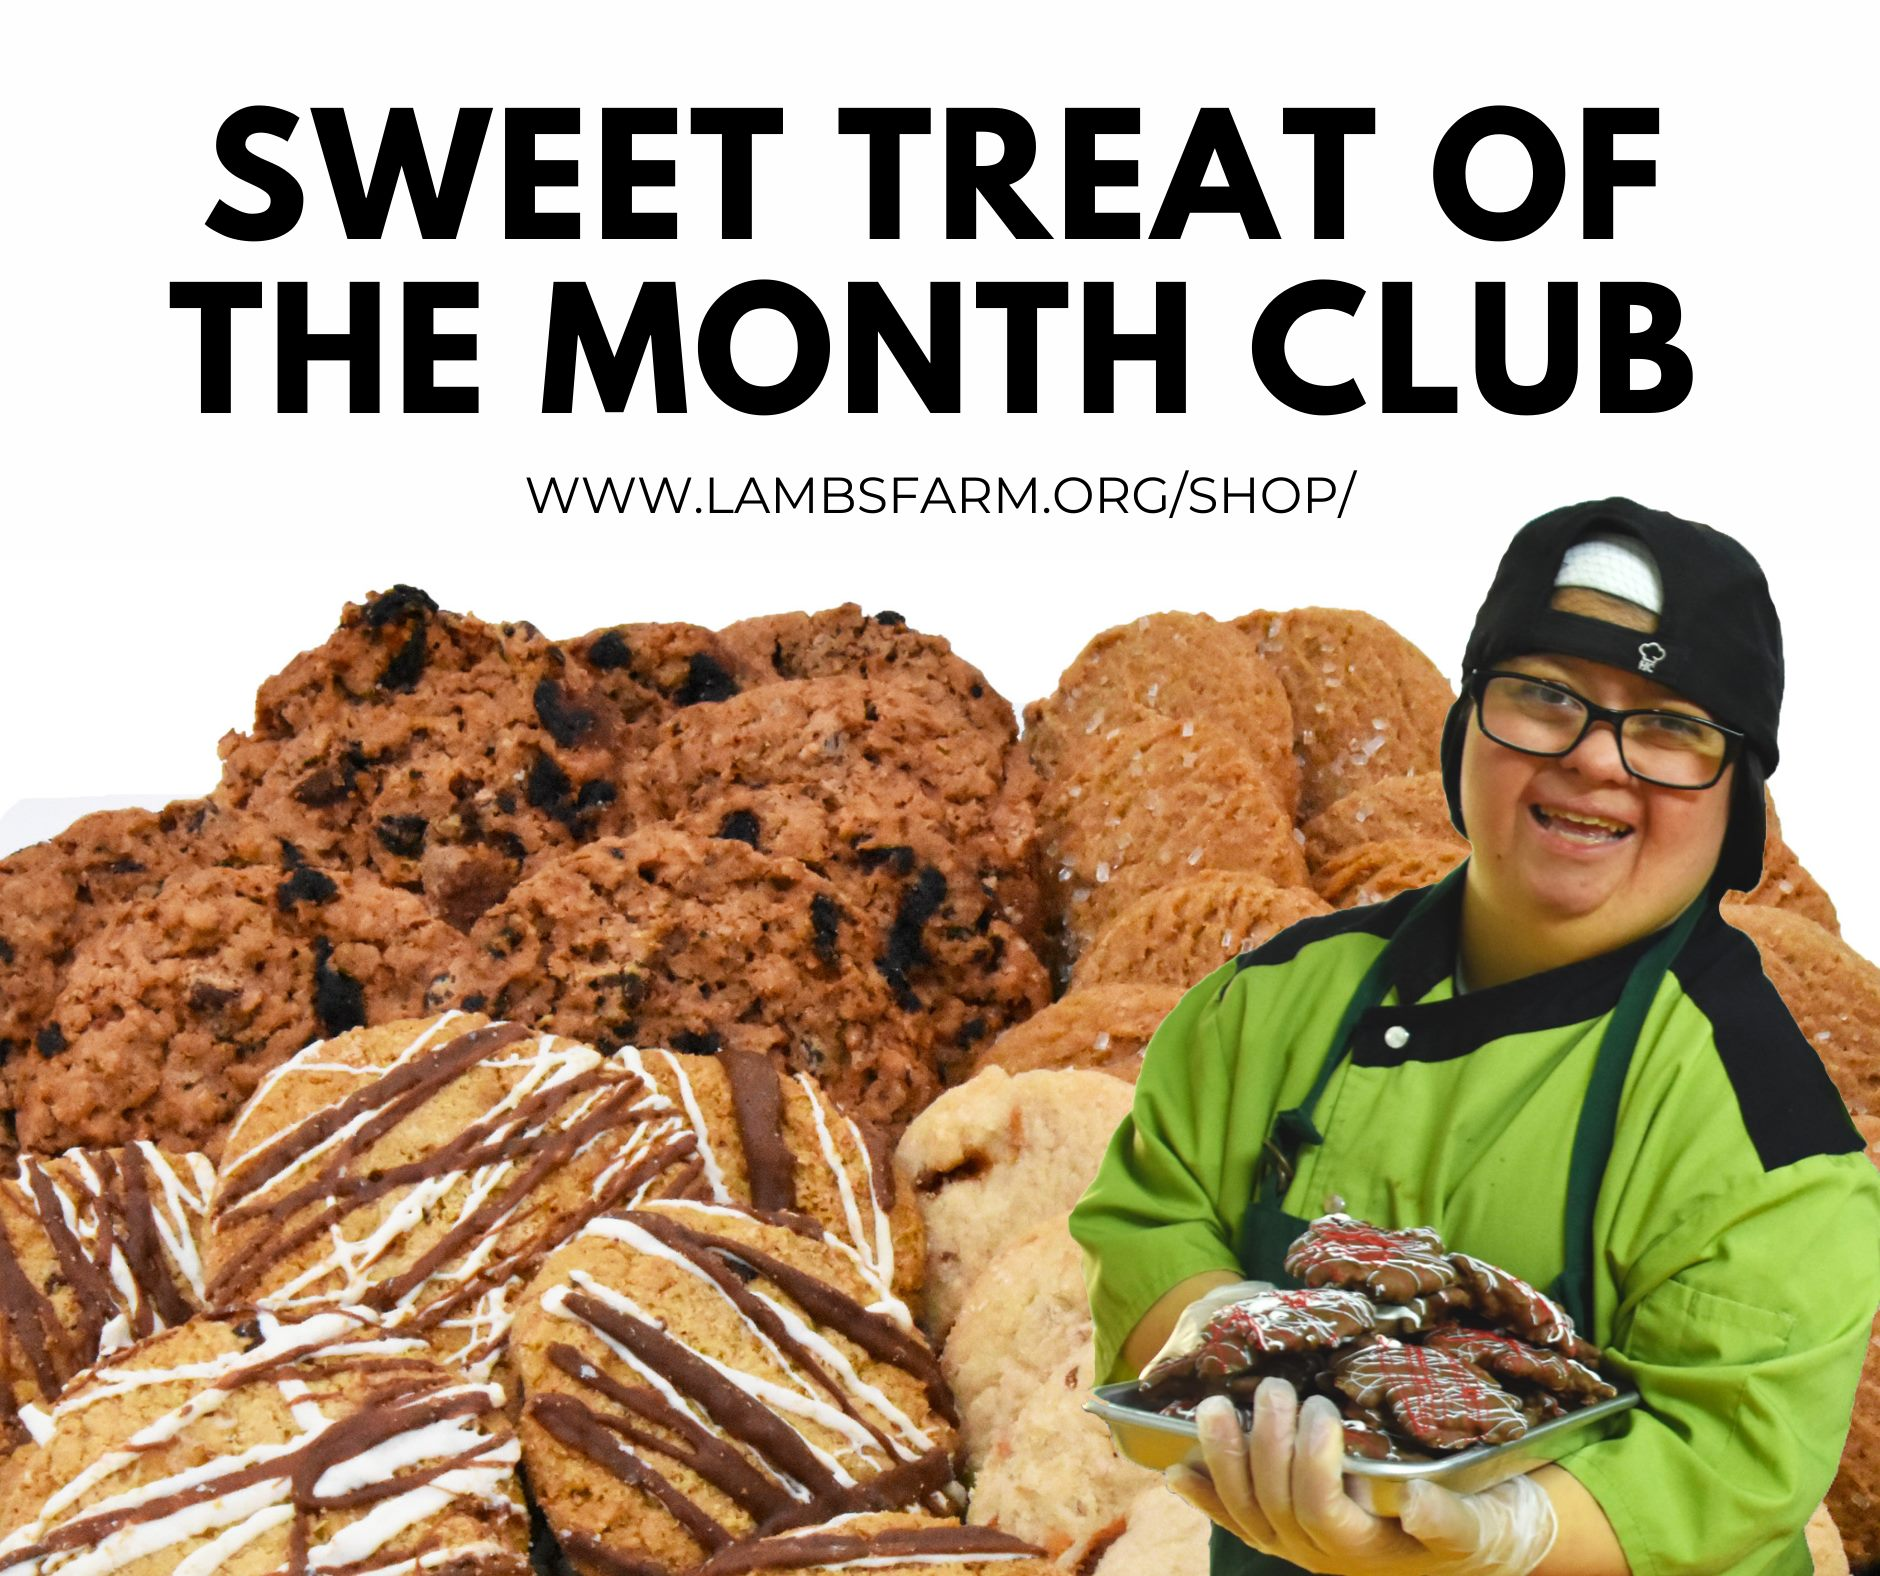 Lambs Farm - Sweet Treat of the Month Club